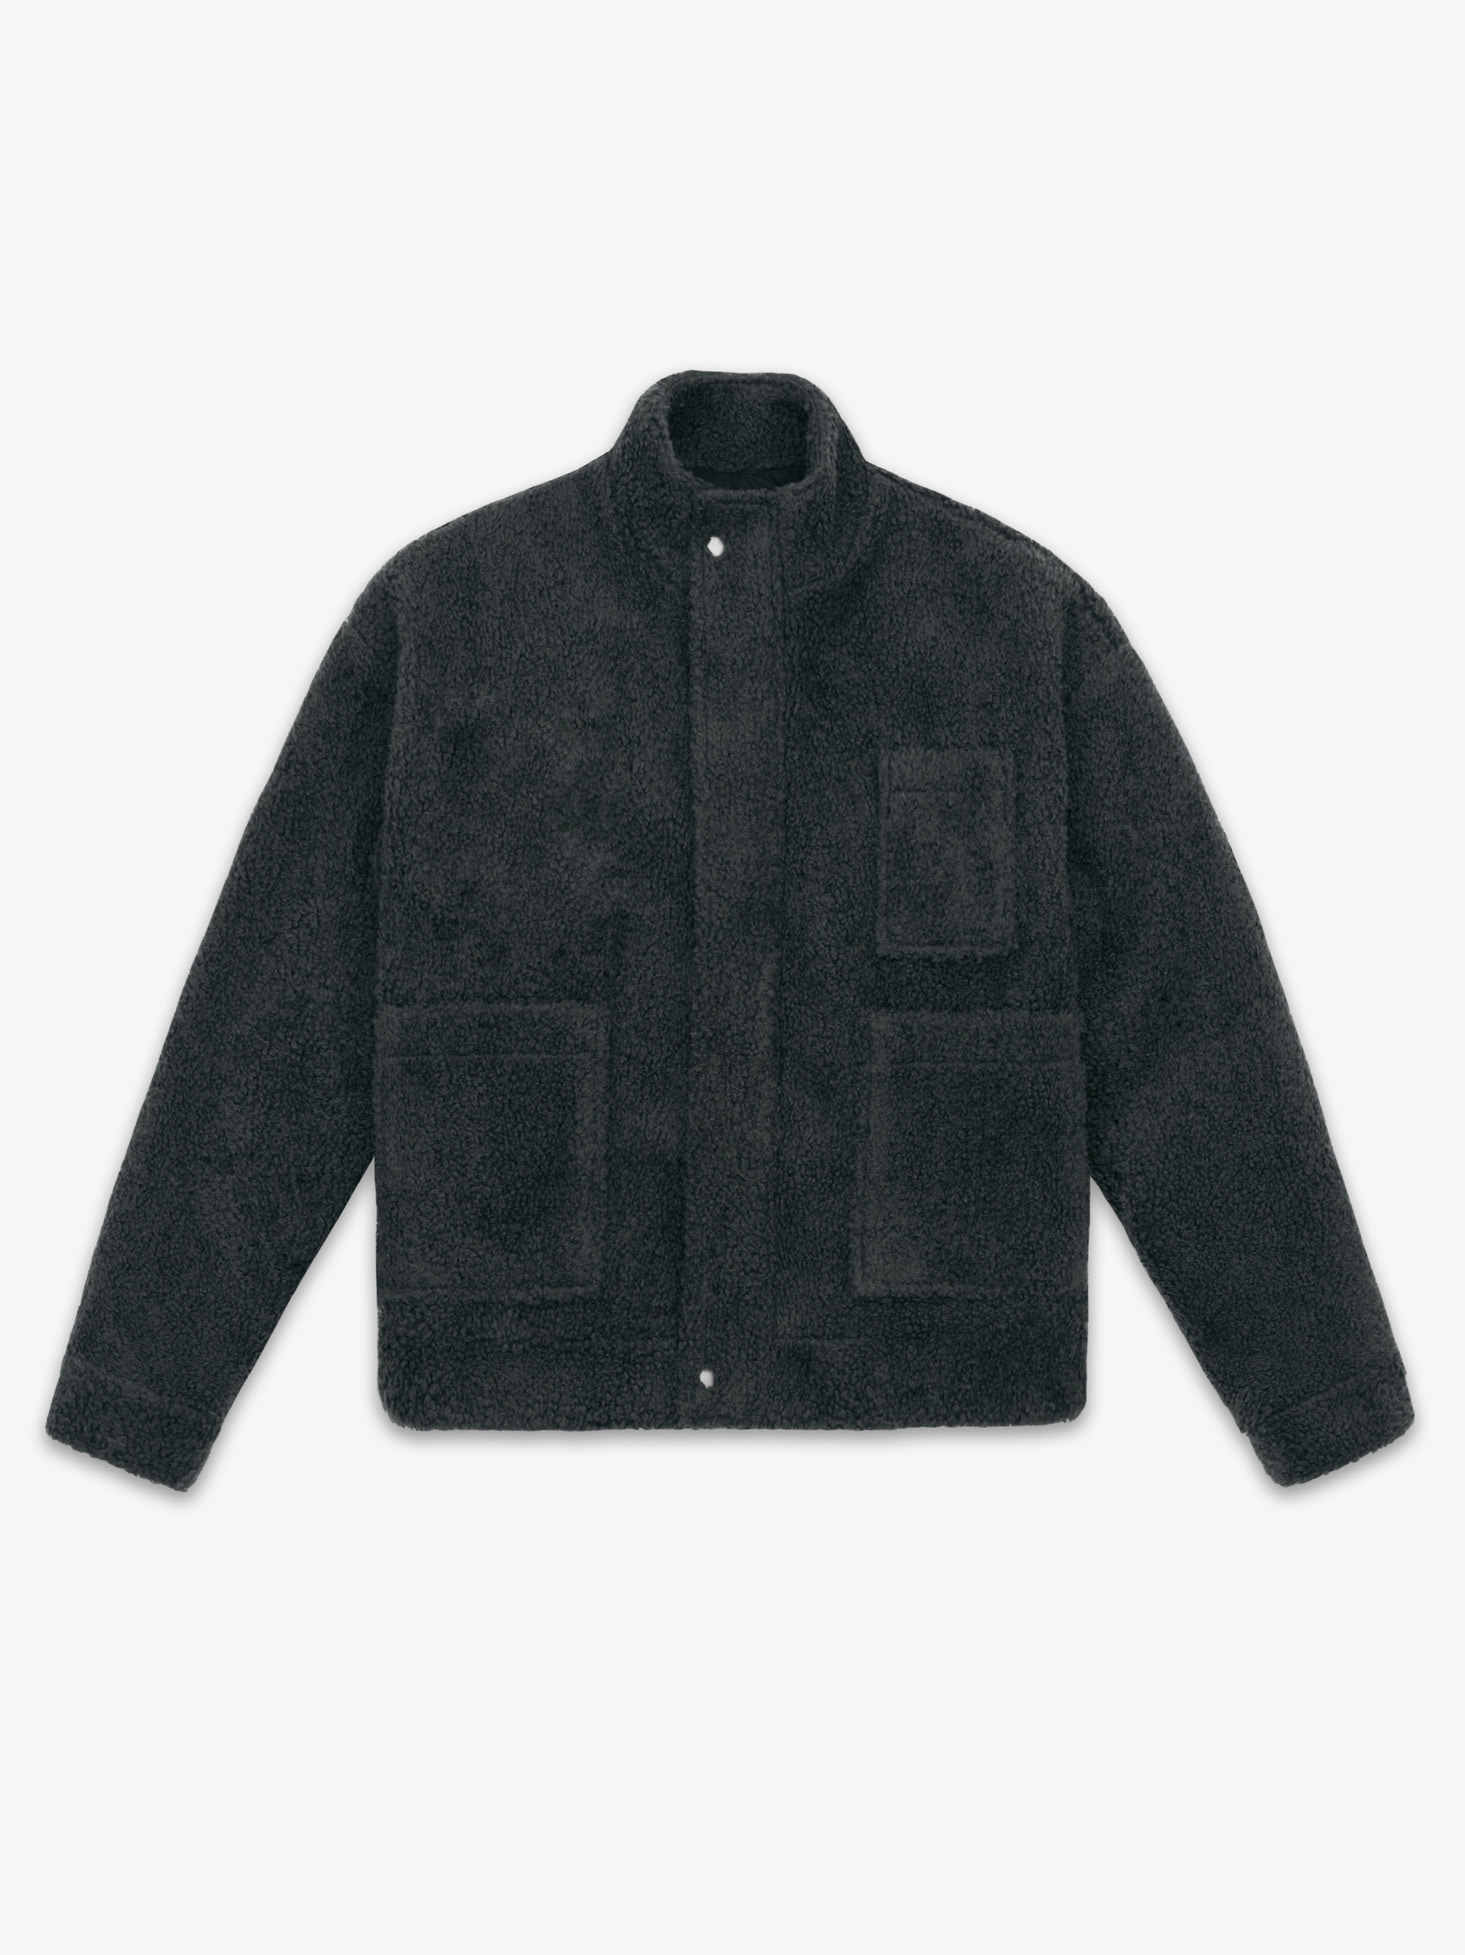 LAMBS WOOL MOBILE JACKET(DAKR GREY)